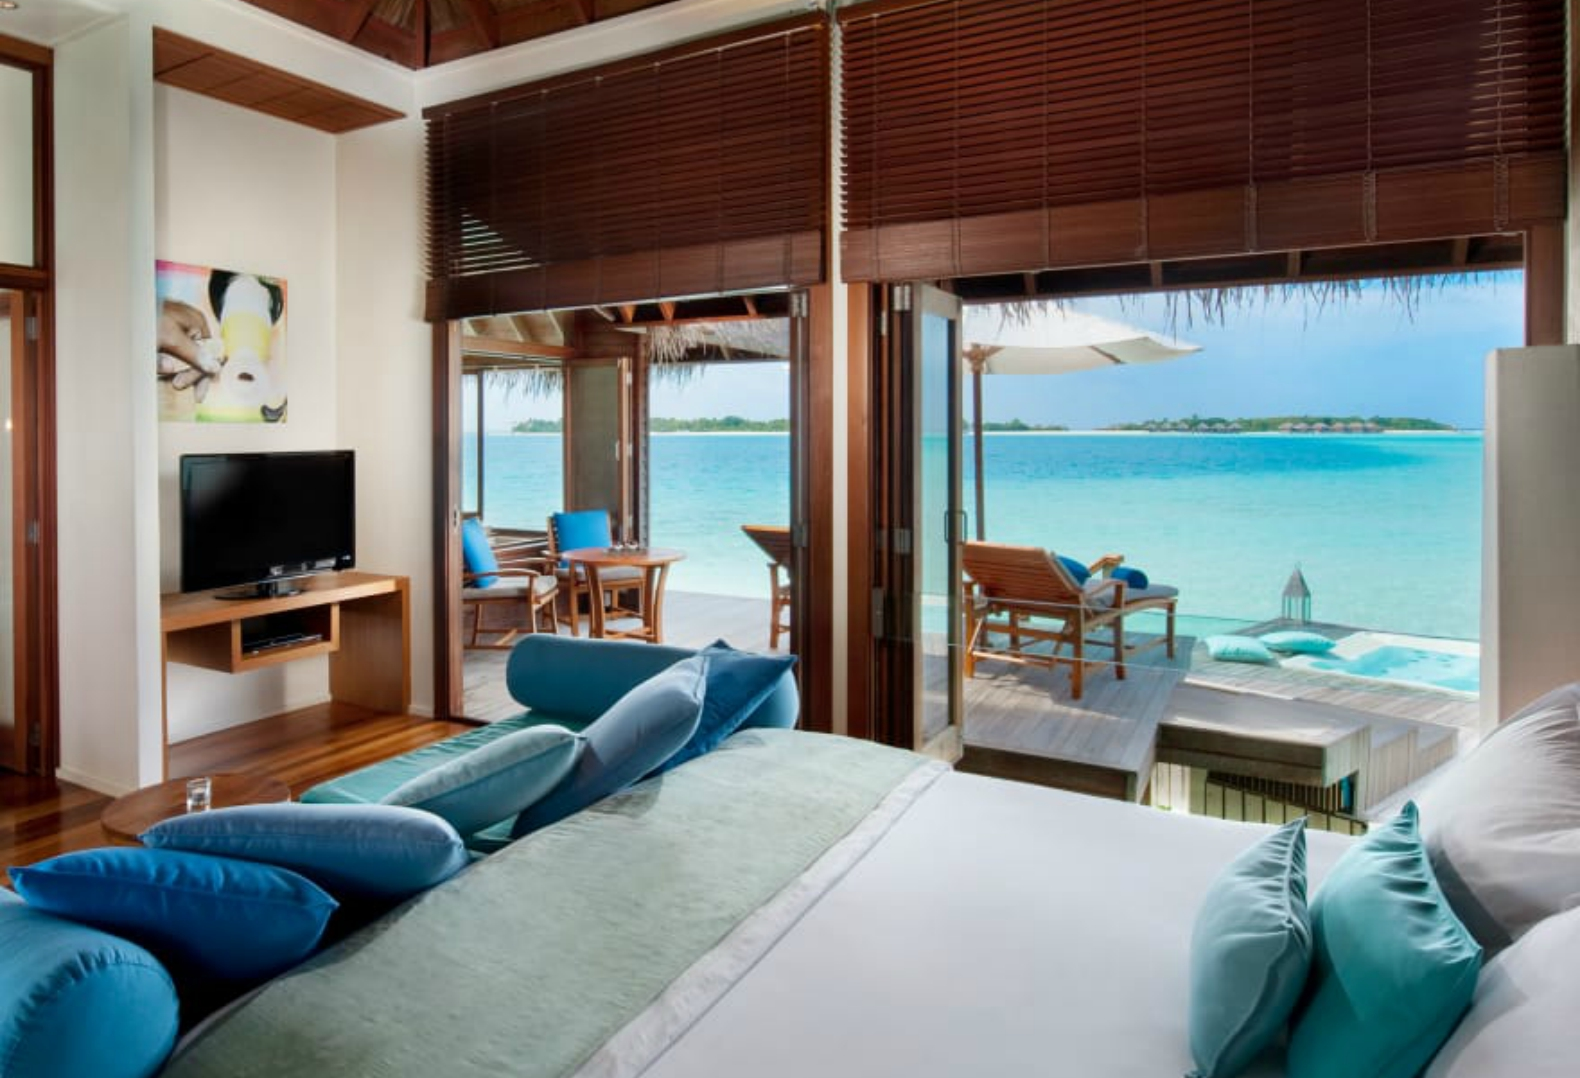 Sleep In This Amazing Underwater Hotel Room At The Conrad Maldives